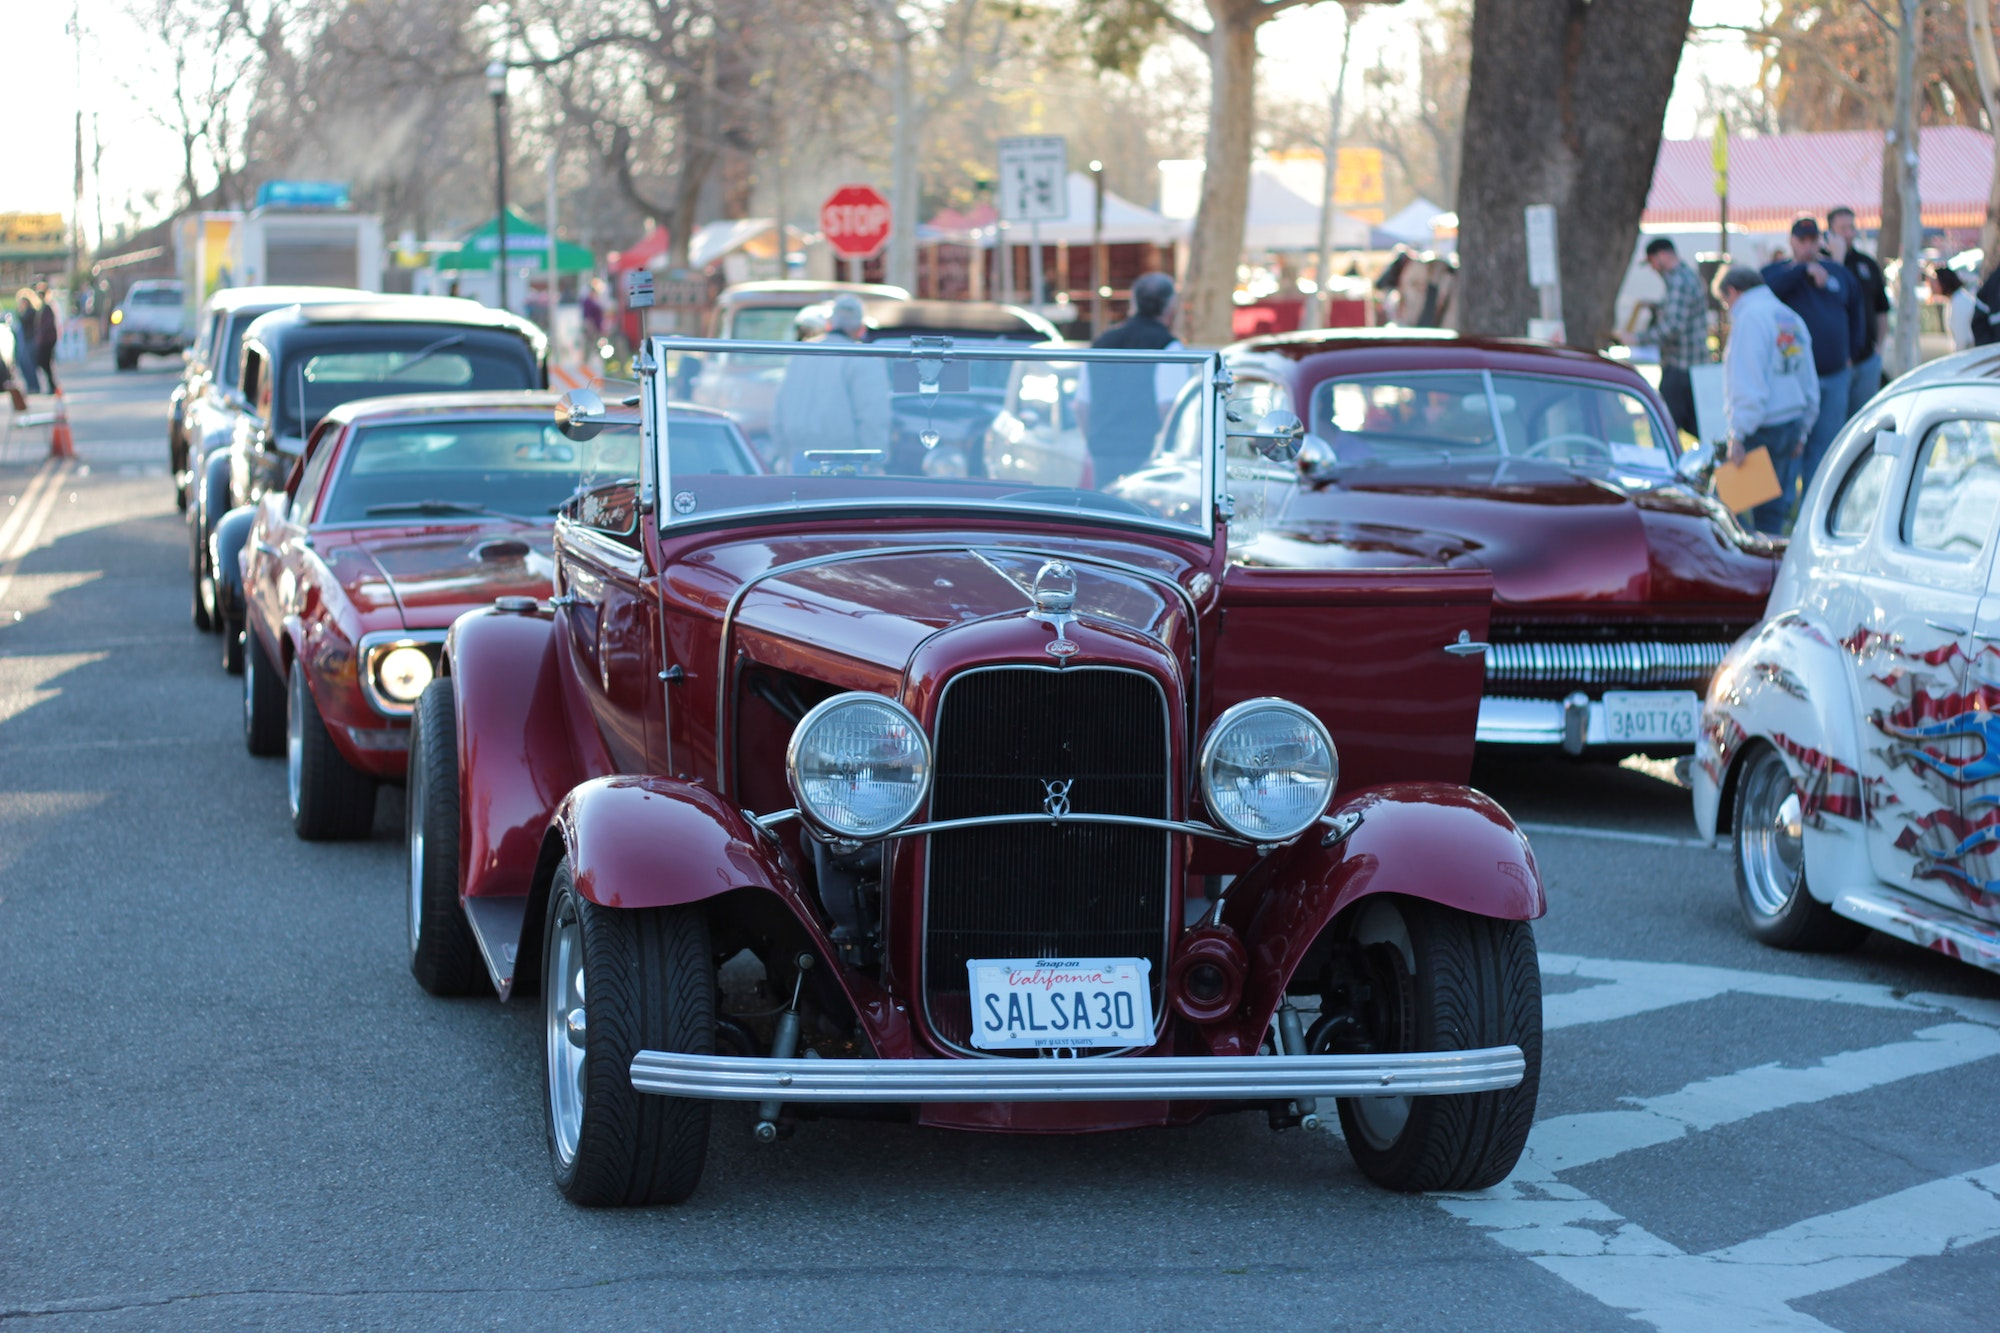 Annual Car Show Sunday Feb Madison Fire Protection District - Car show sunday